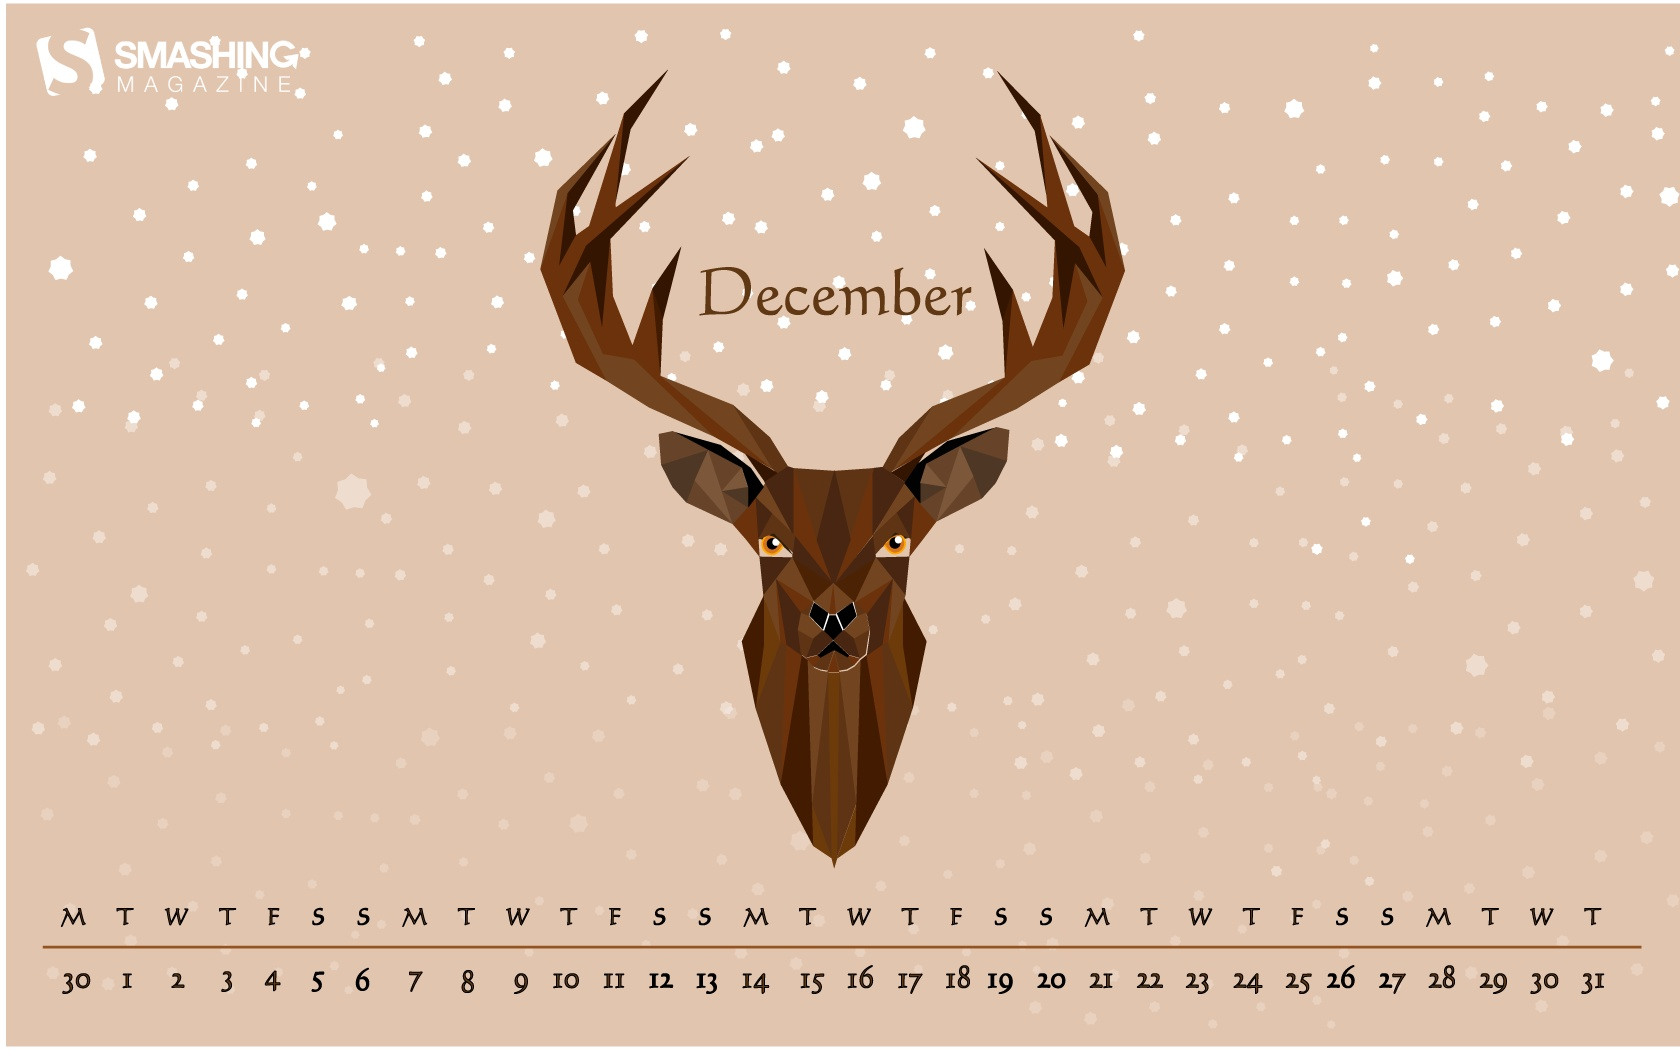 15 151829 month calendar christmas desktop wallpaper reindeer